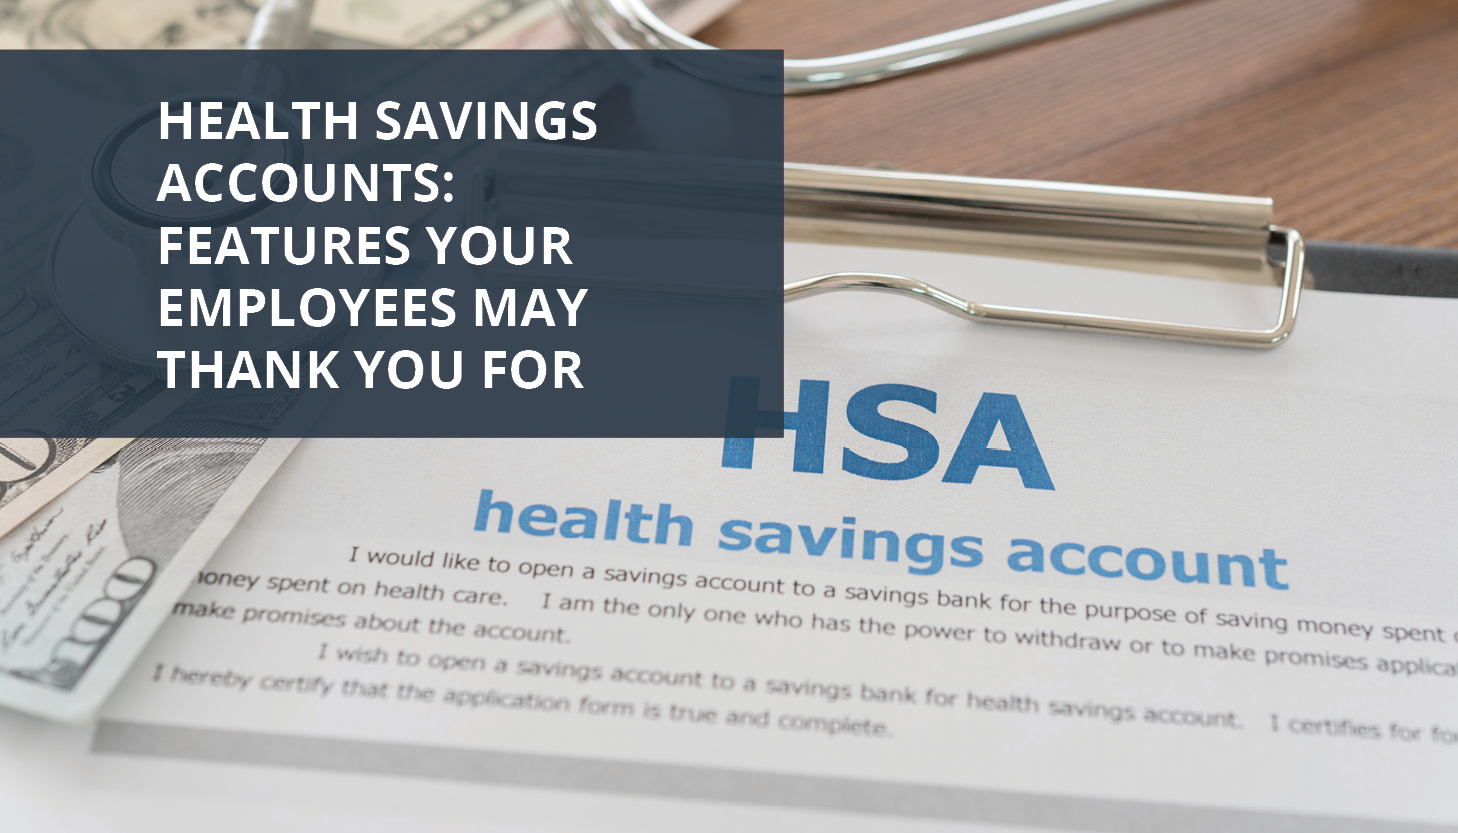 RPM Q3 2018_Pulse Image_Blog Article 3_Health Savings Accounts Features Your Employees May Thank You For